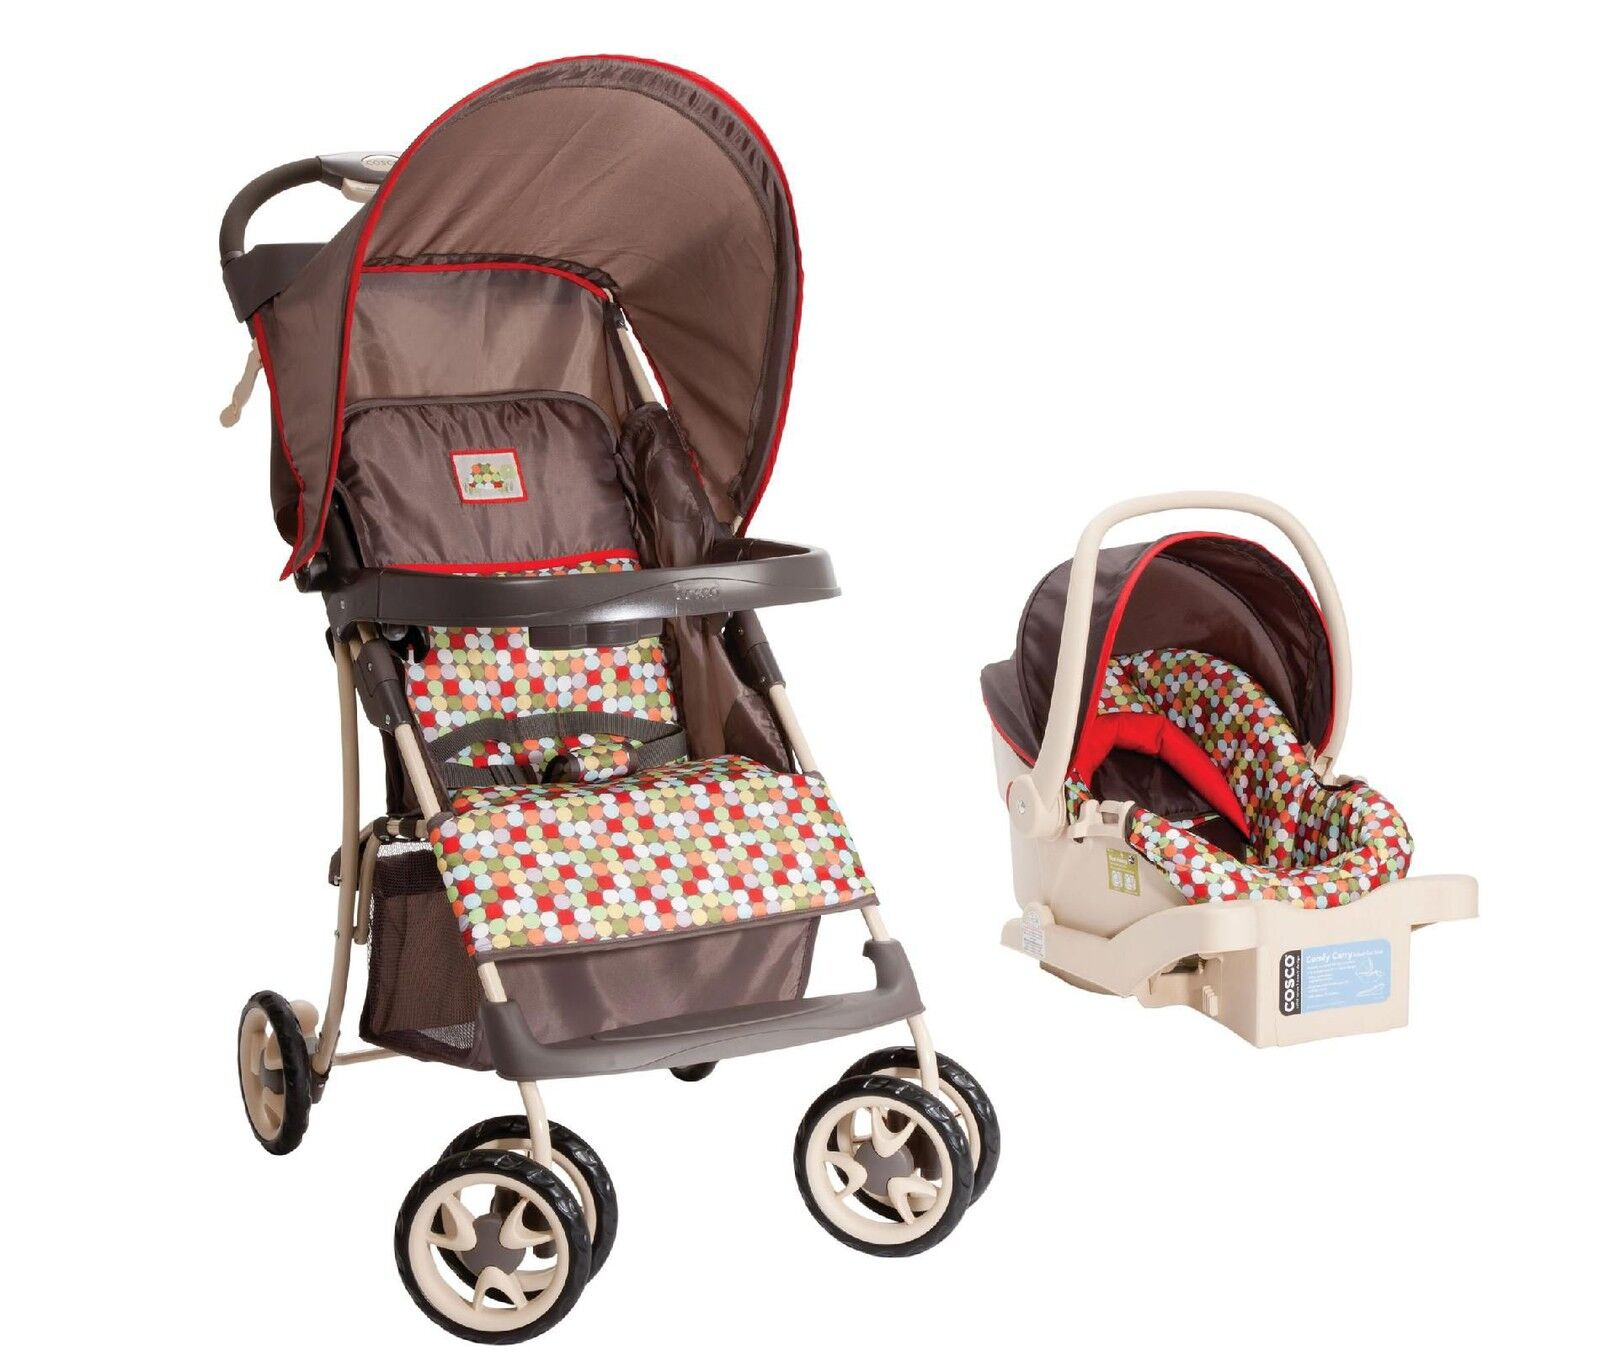 Stroller Accessory Buying Guide